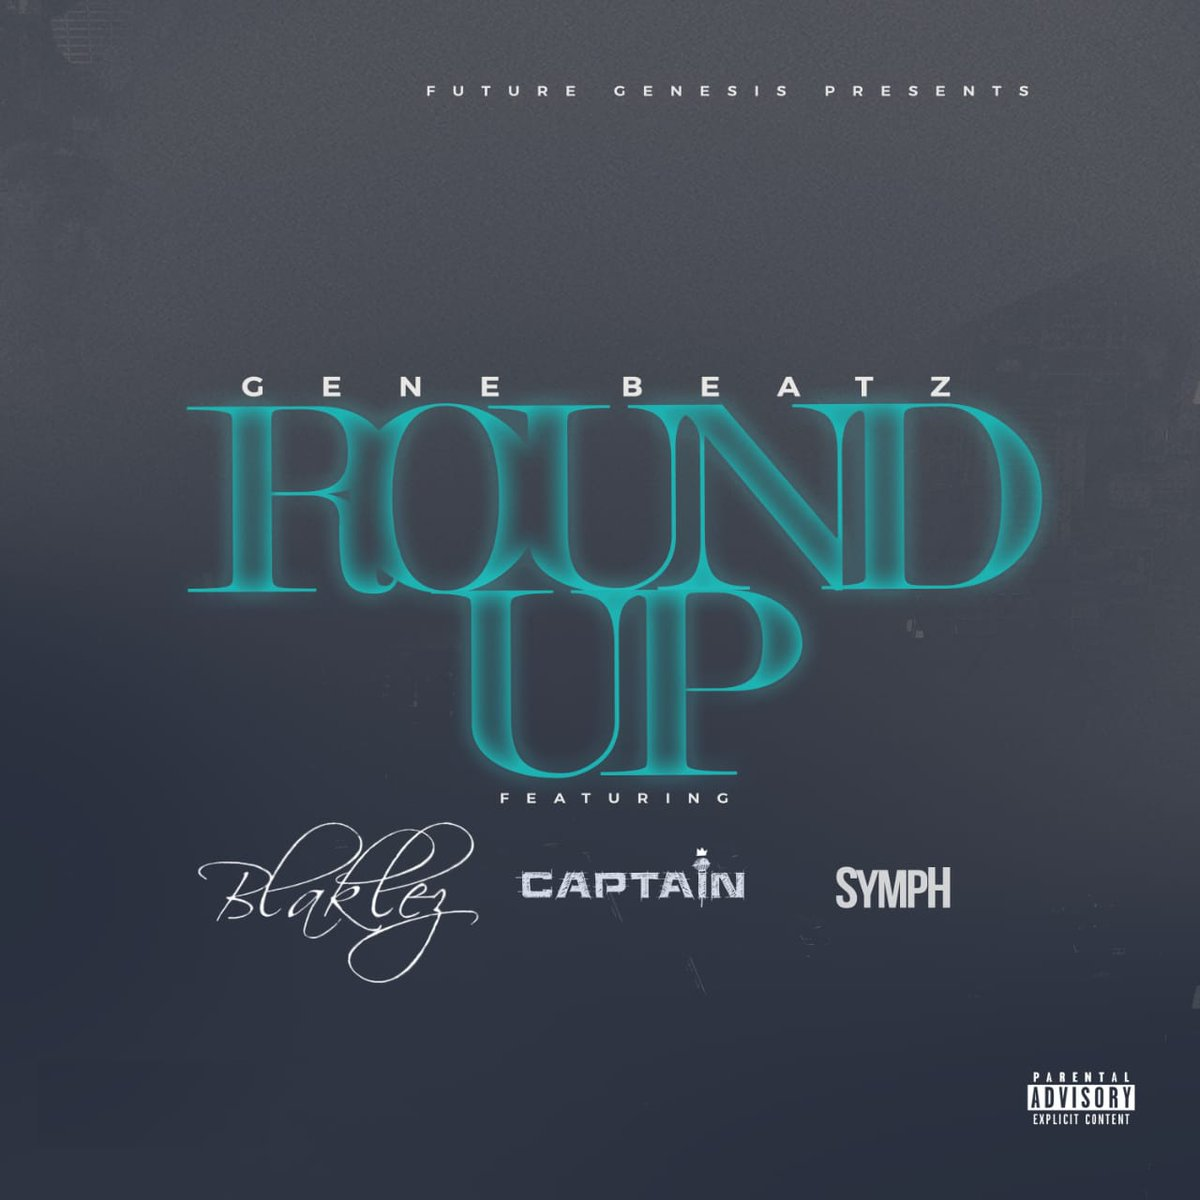 gene beatz Listen To Gene Beatz Latest 'Round Up' Joint Ft. Blaklez, Captain & SympH DlCYyr1U0AAEvle